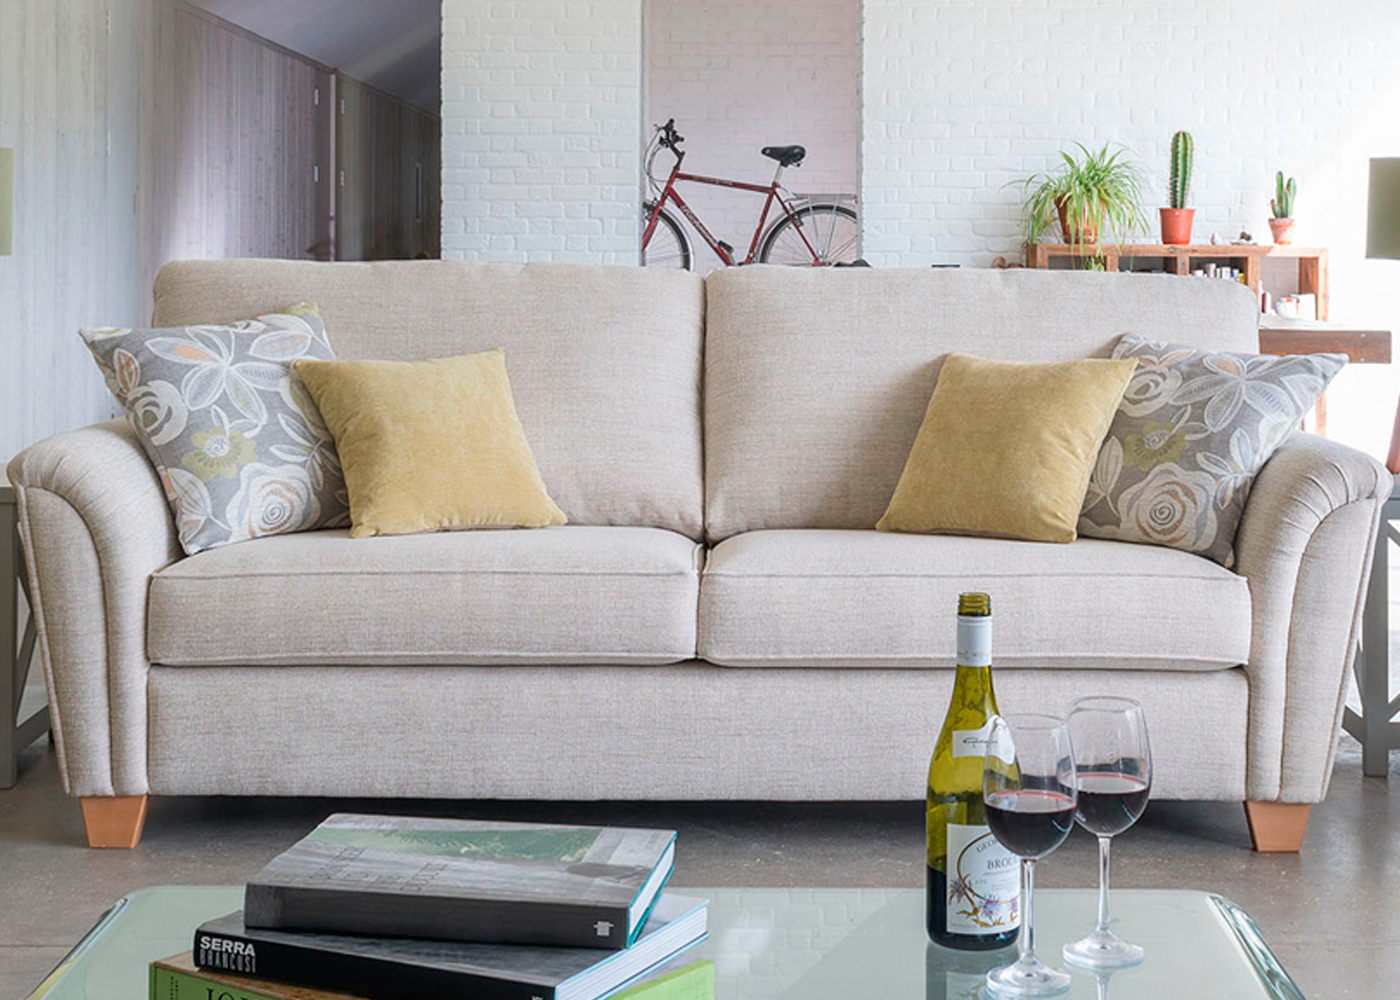 barcelona sofa uk 2 seat reclining with console madrid large midfurn furniture superstore